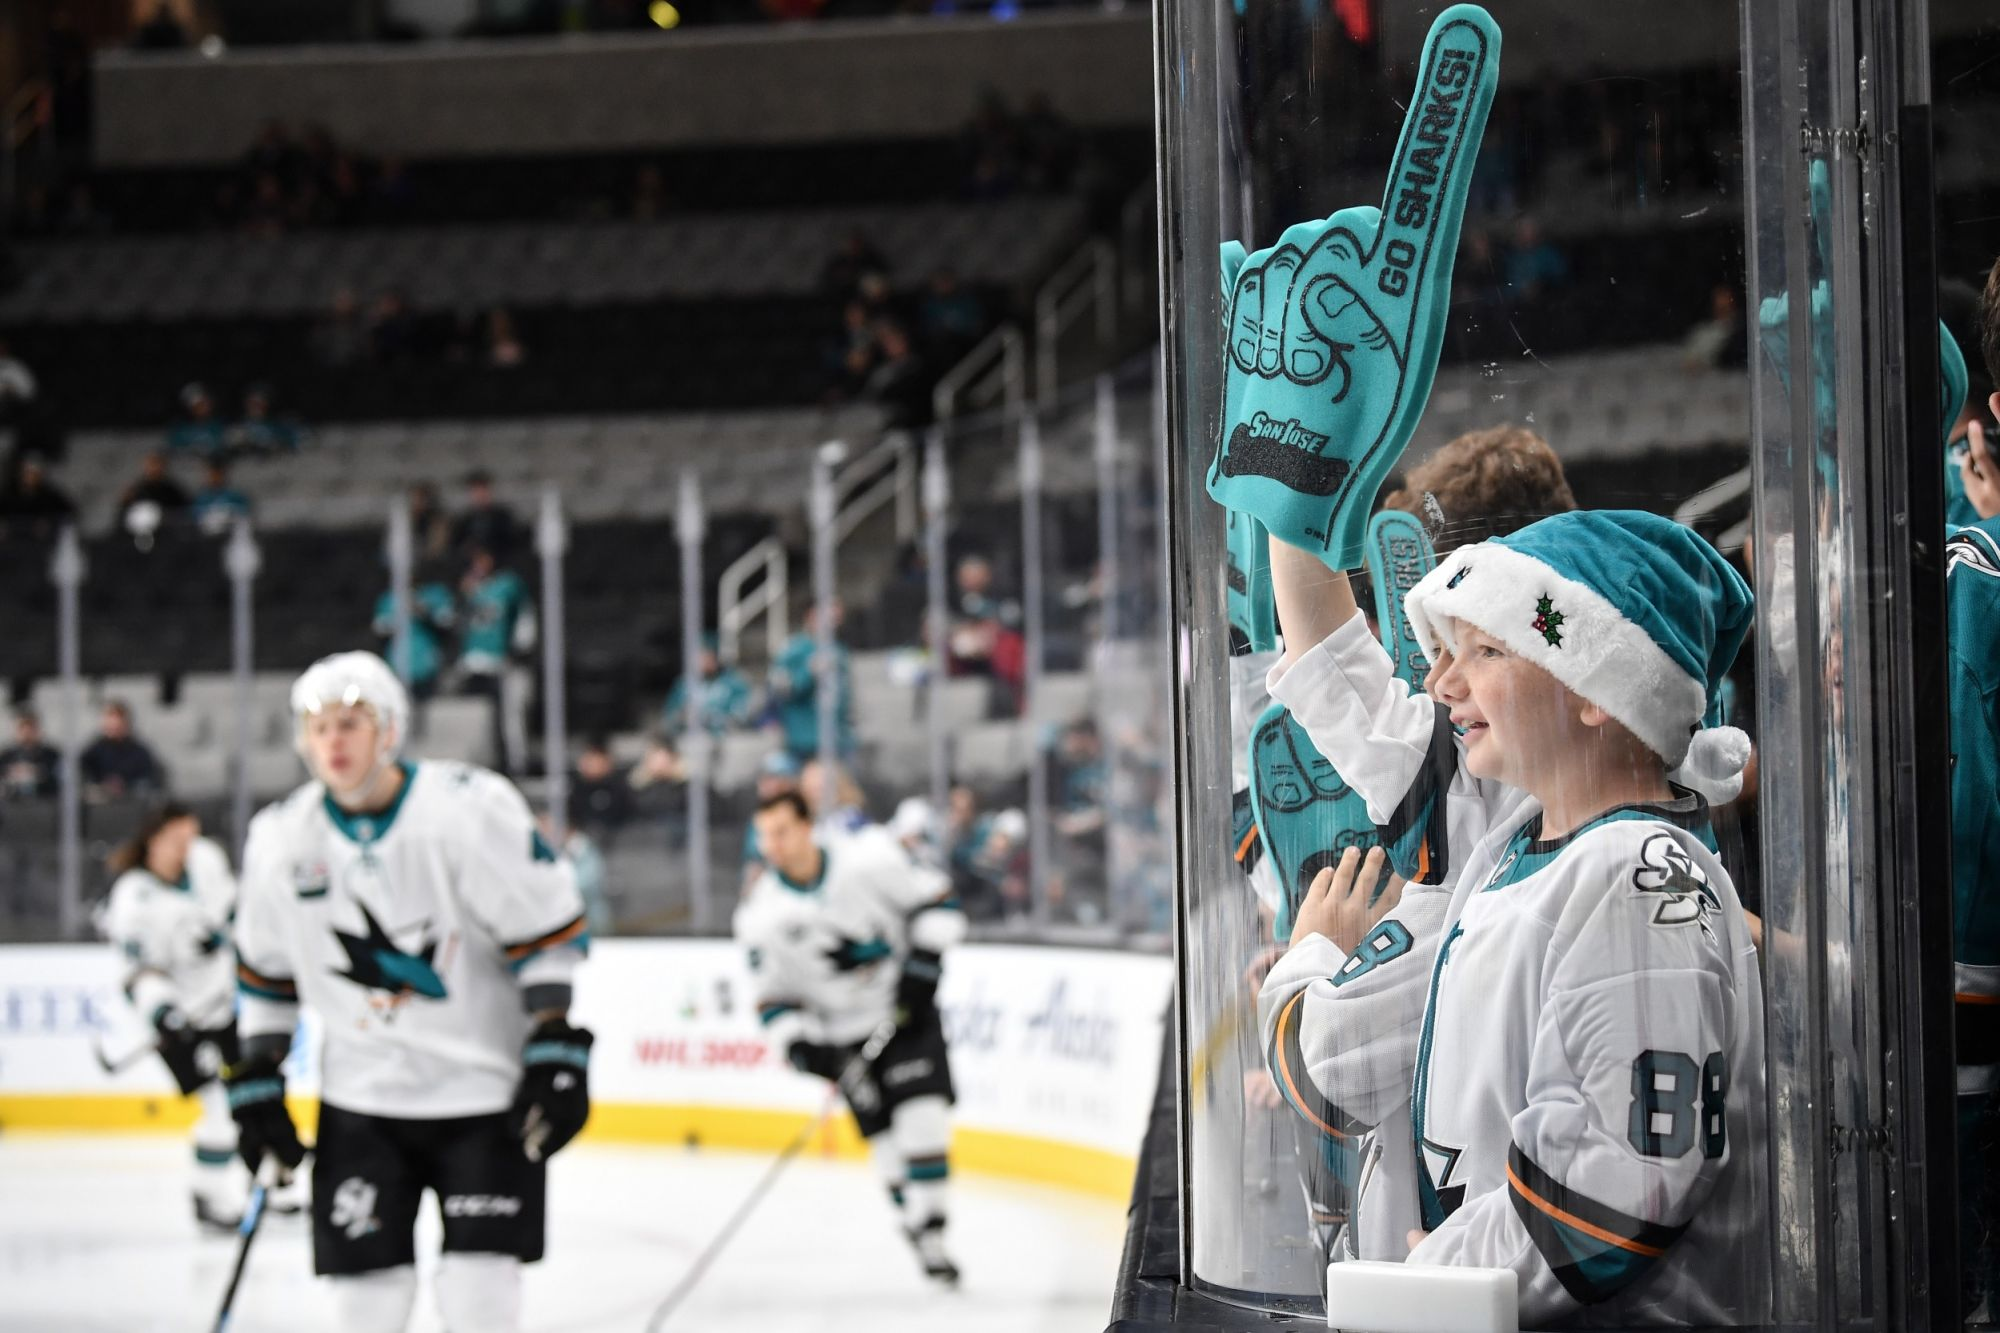 How the San Jose Sharks Score With Fan Experience